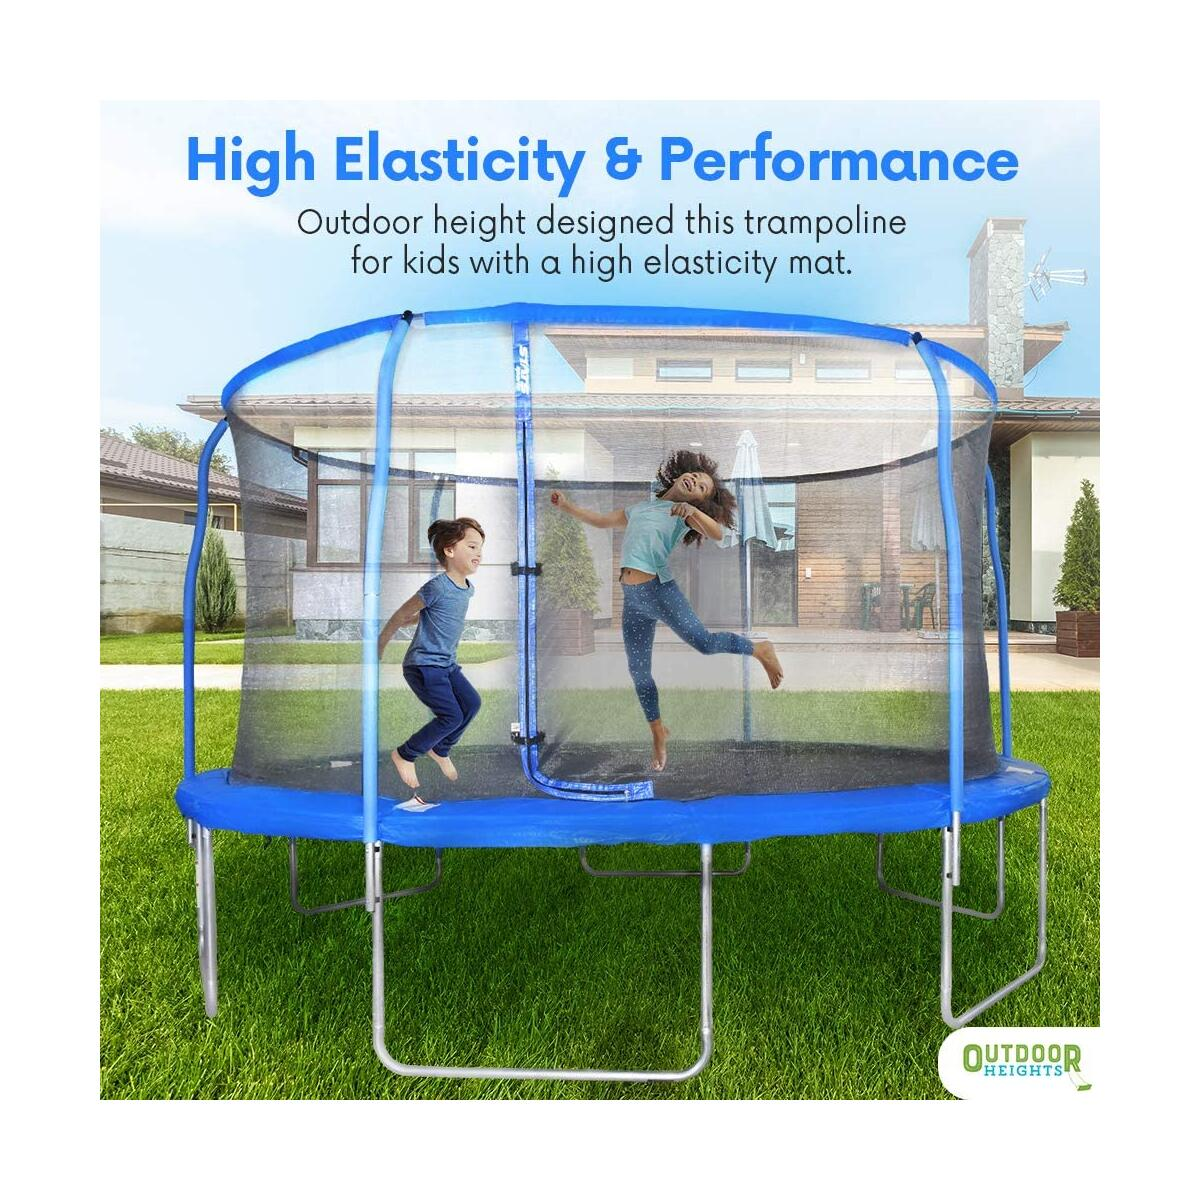 REFURBISHED- 14 FOOT - Outdoor Heights Trampoline with Safety Enclosure - Trampoline with Net, Easy Assembly, Spring Cover, Trampoline for Kids